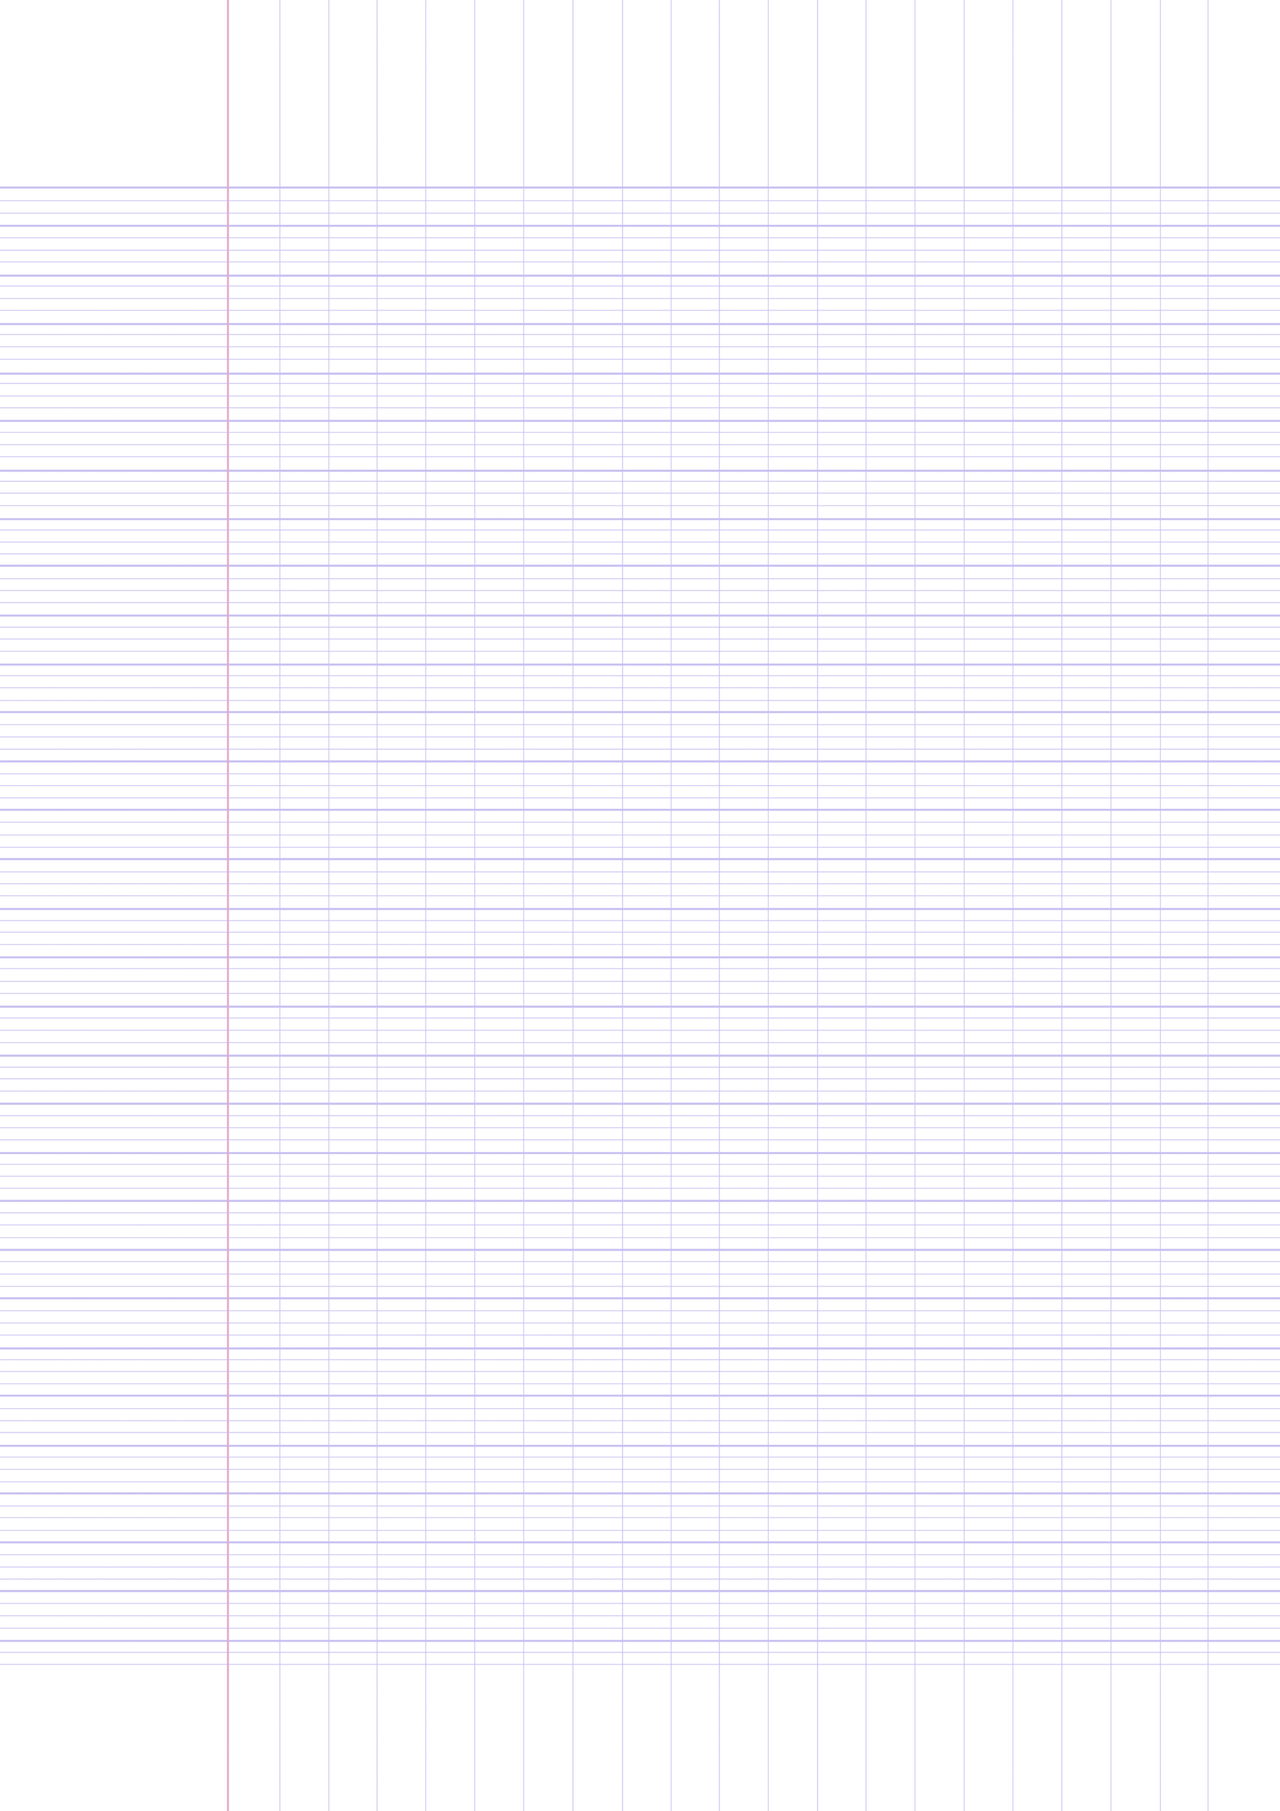 Printable French Ruled Paper Template (A4 Size) by marxmars on ...